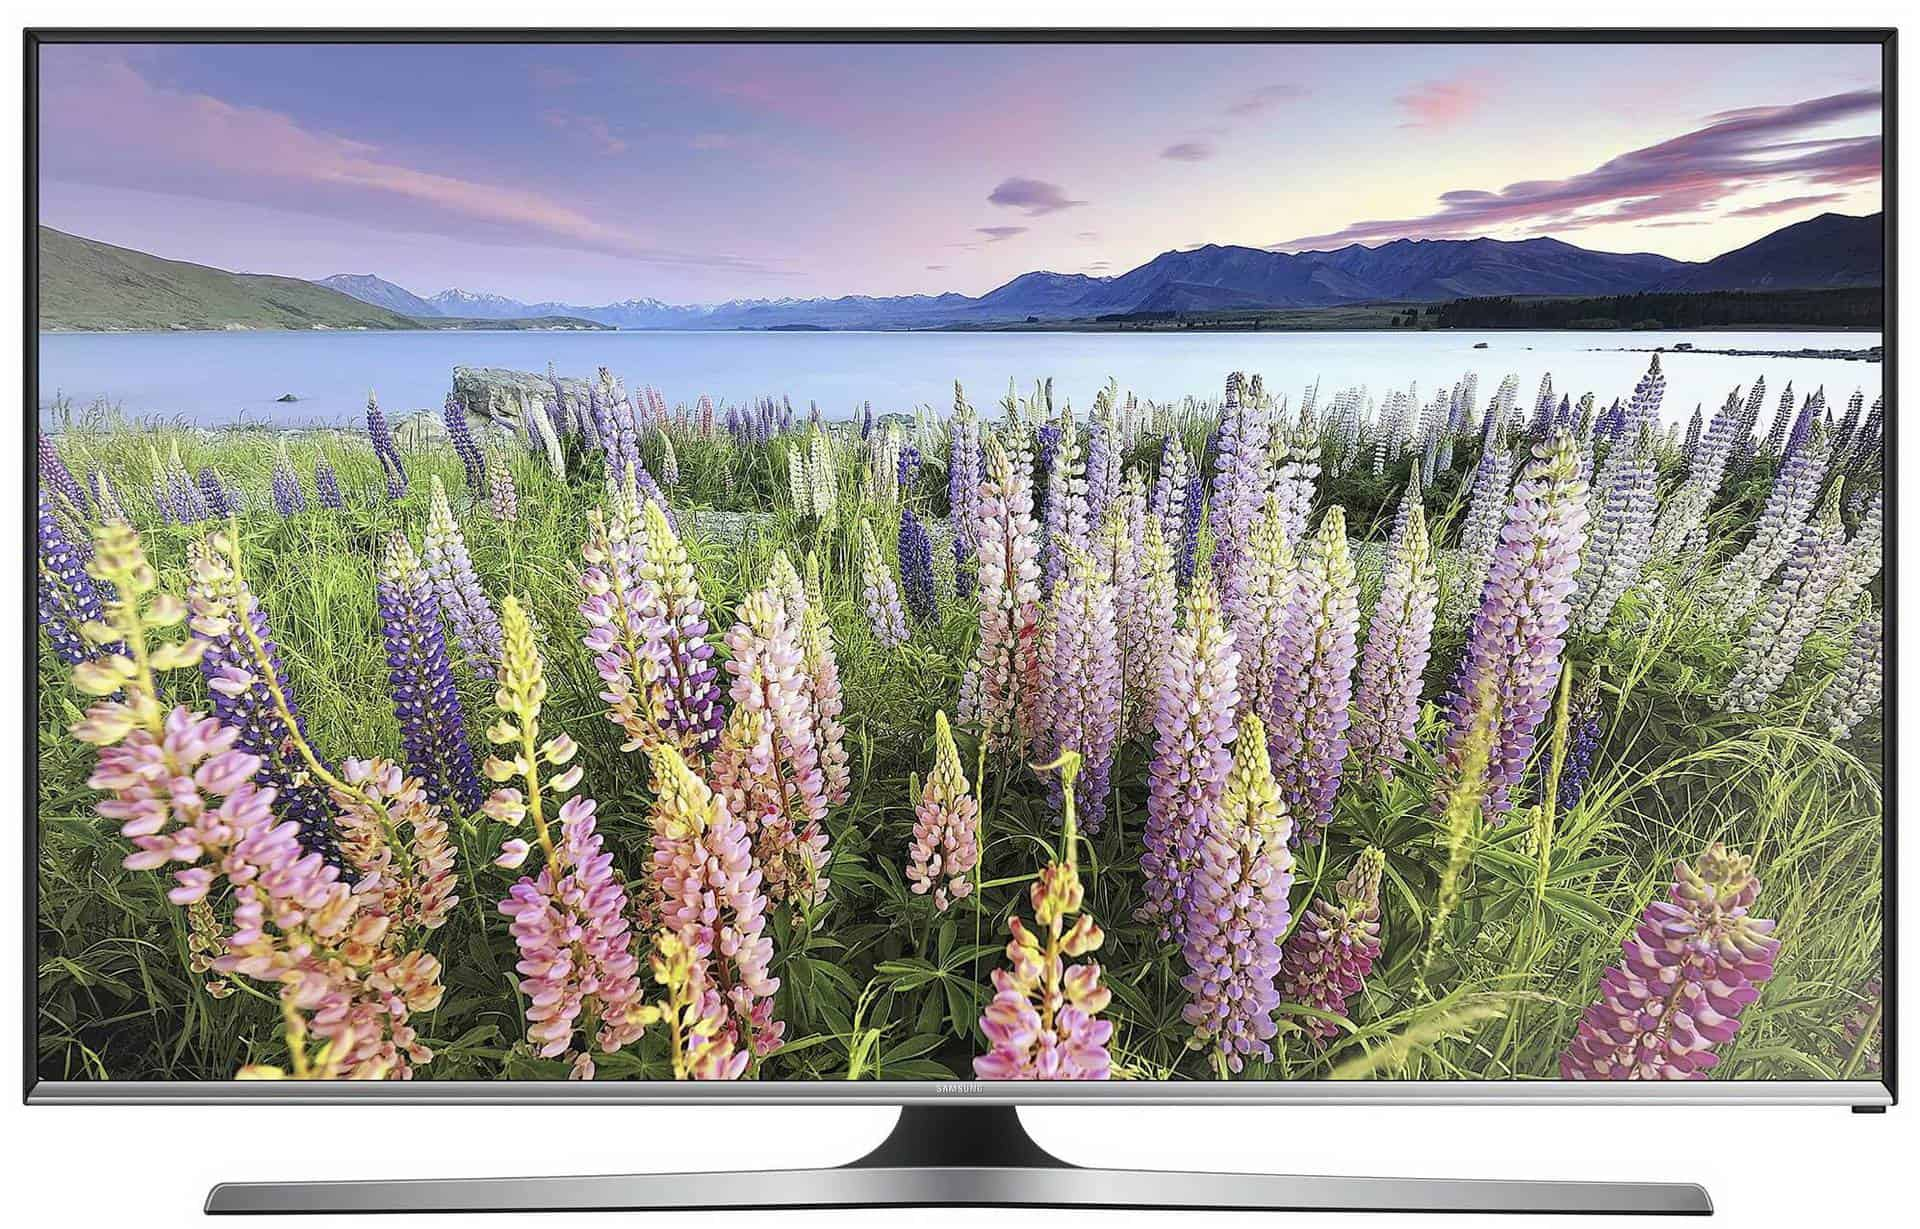 Samsung 43J5570 - televizor Smart LED cu diagonala de 109 cm si rezolutie Full HD!